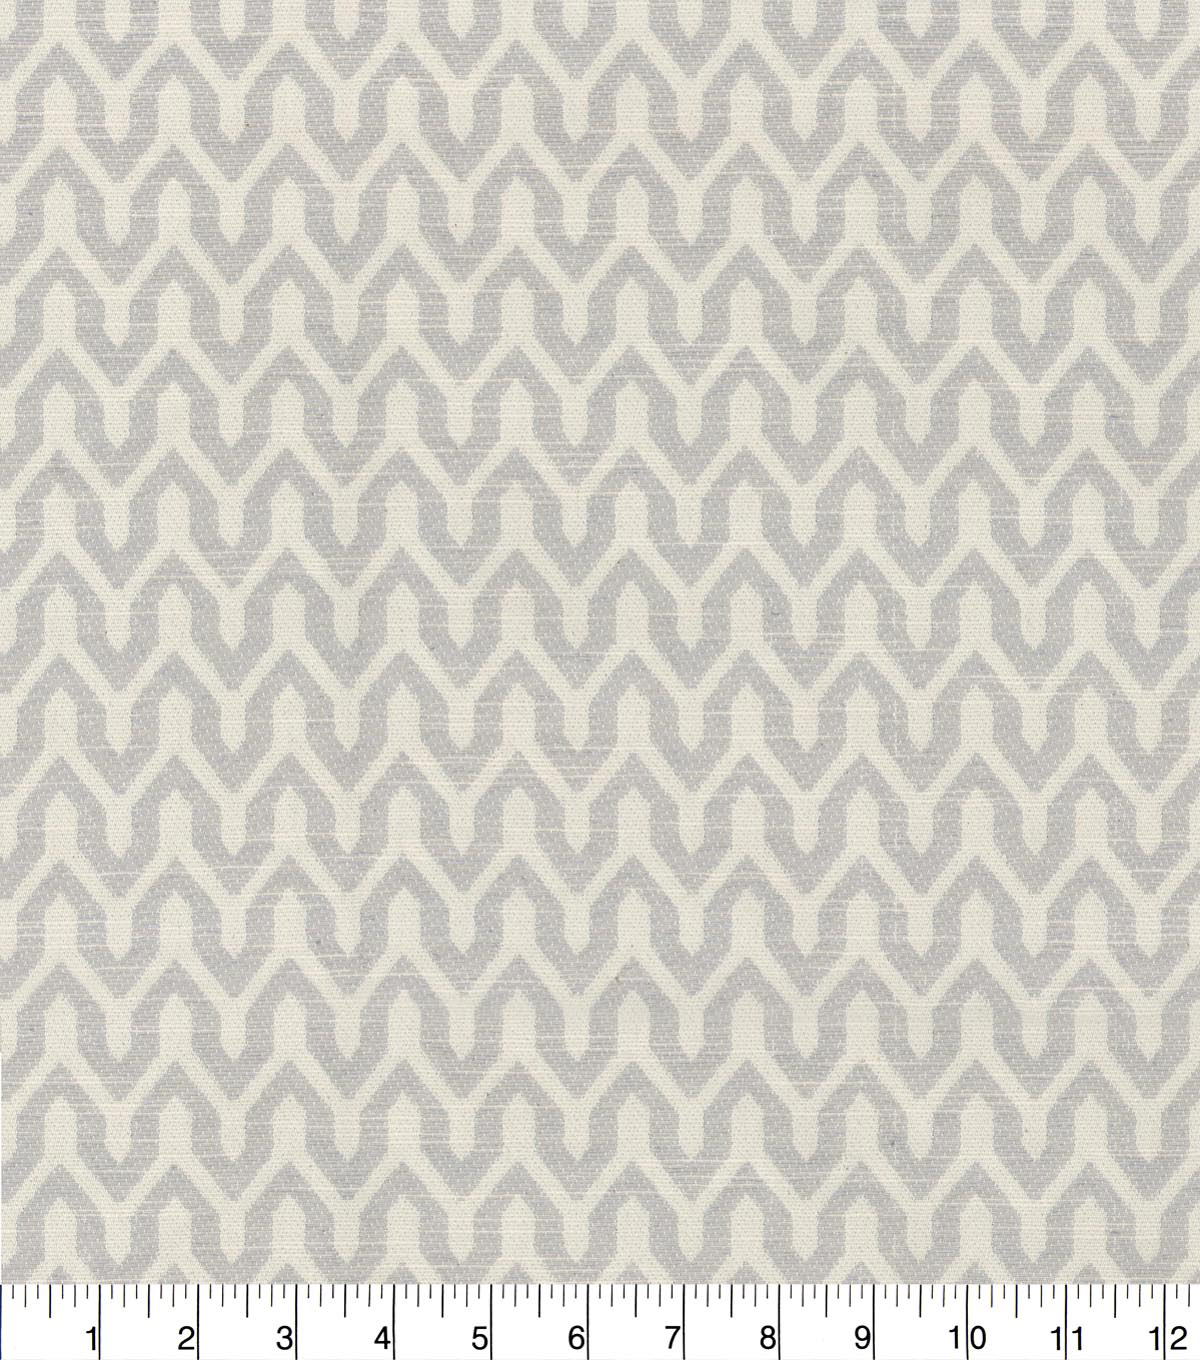 Waverly Upholstery Fabric 54''-Driftwood New Heights